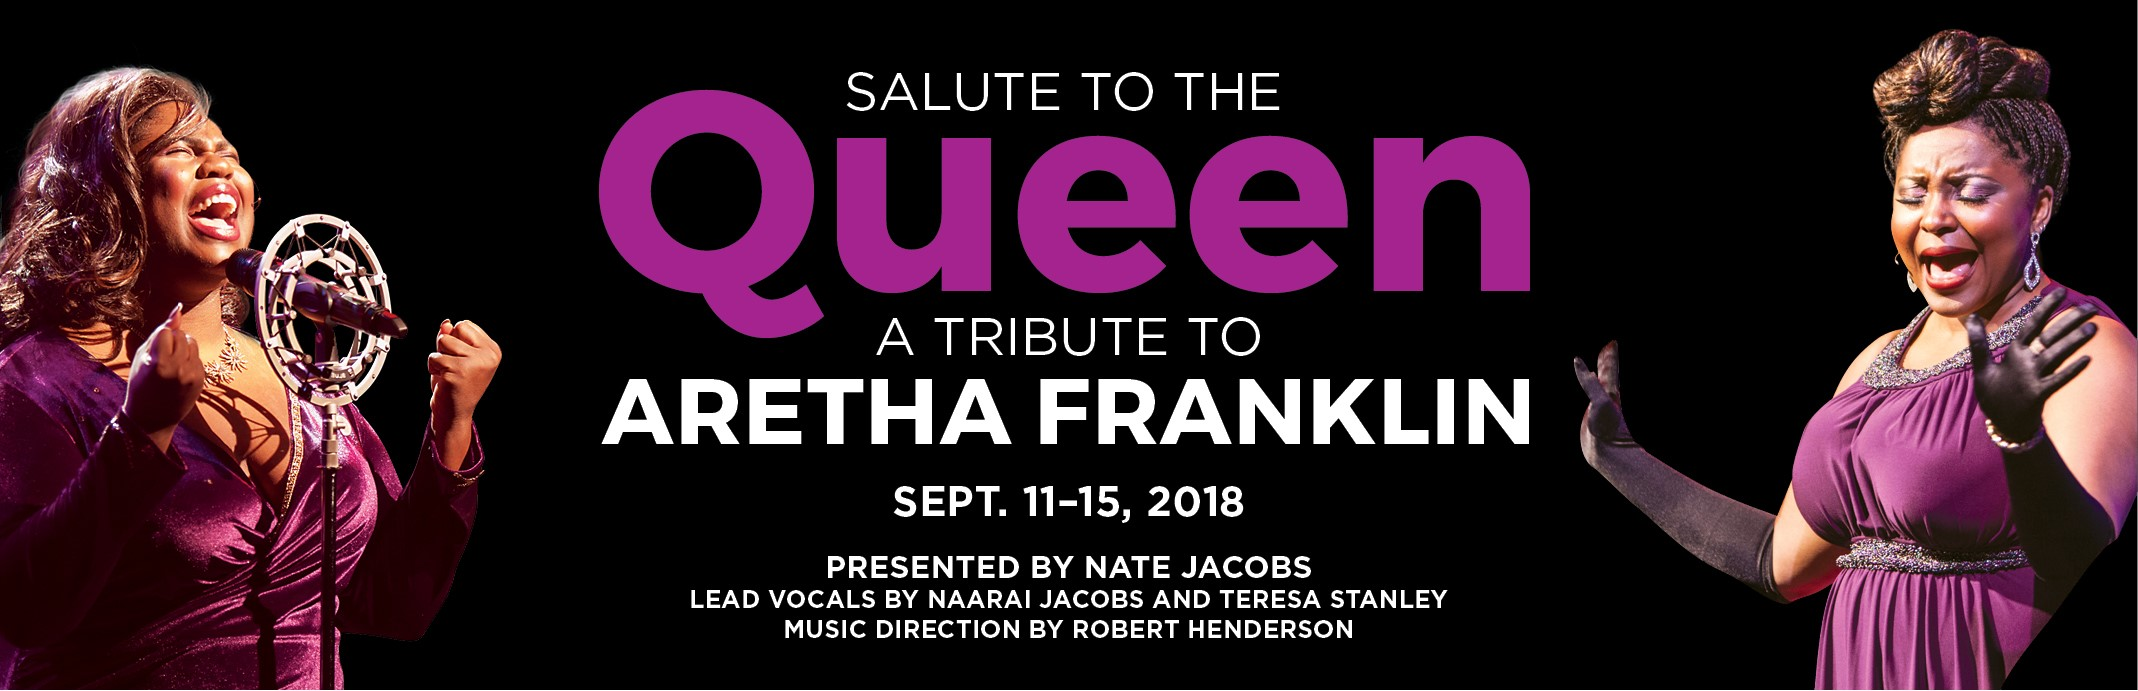 Salute to the Queen: A Tribute to Aretha Franklin